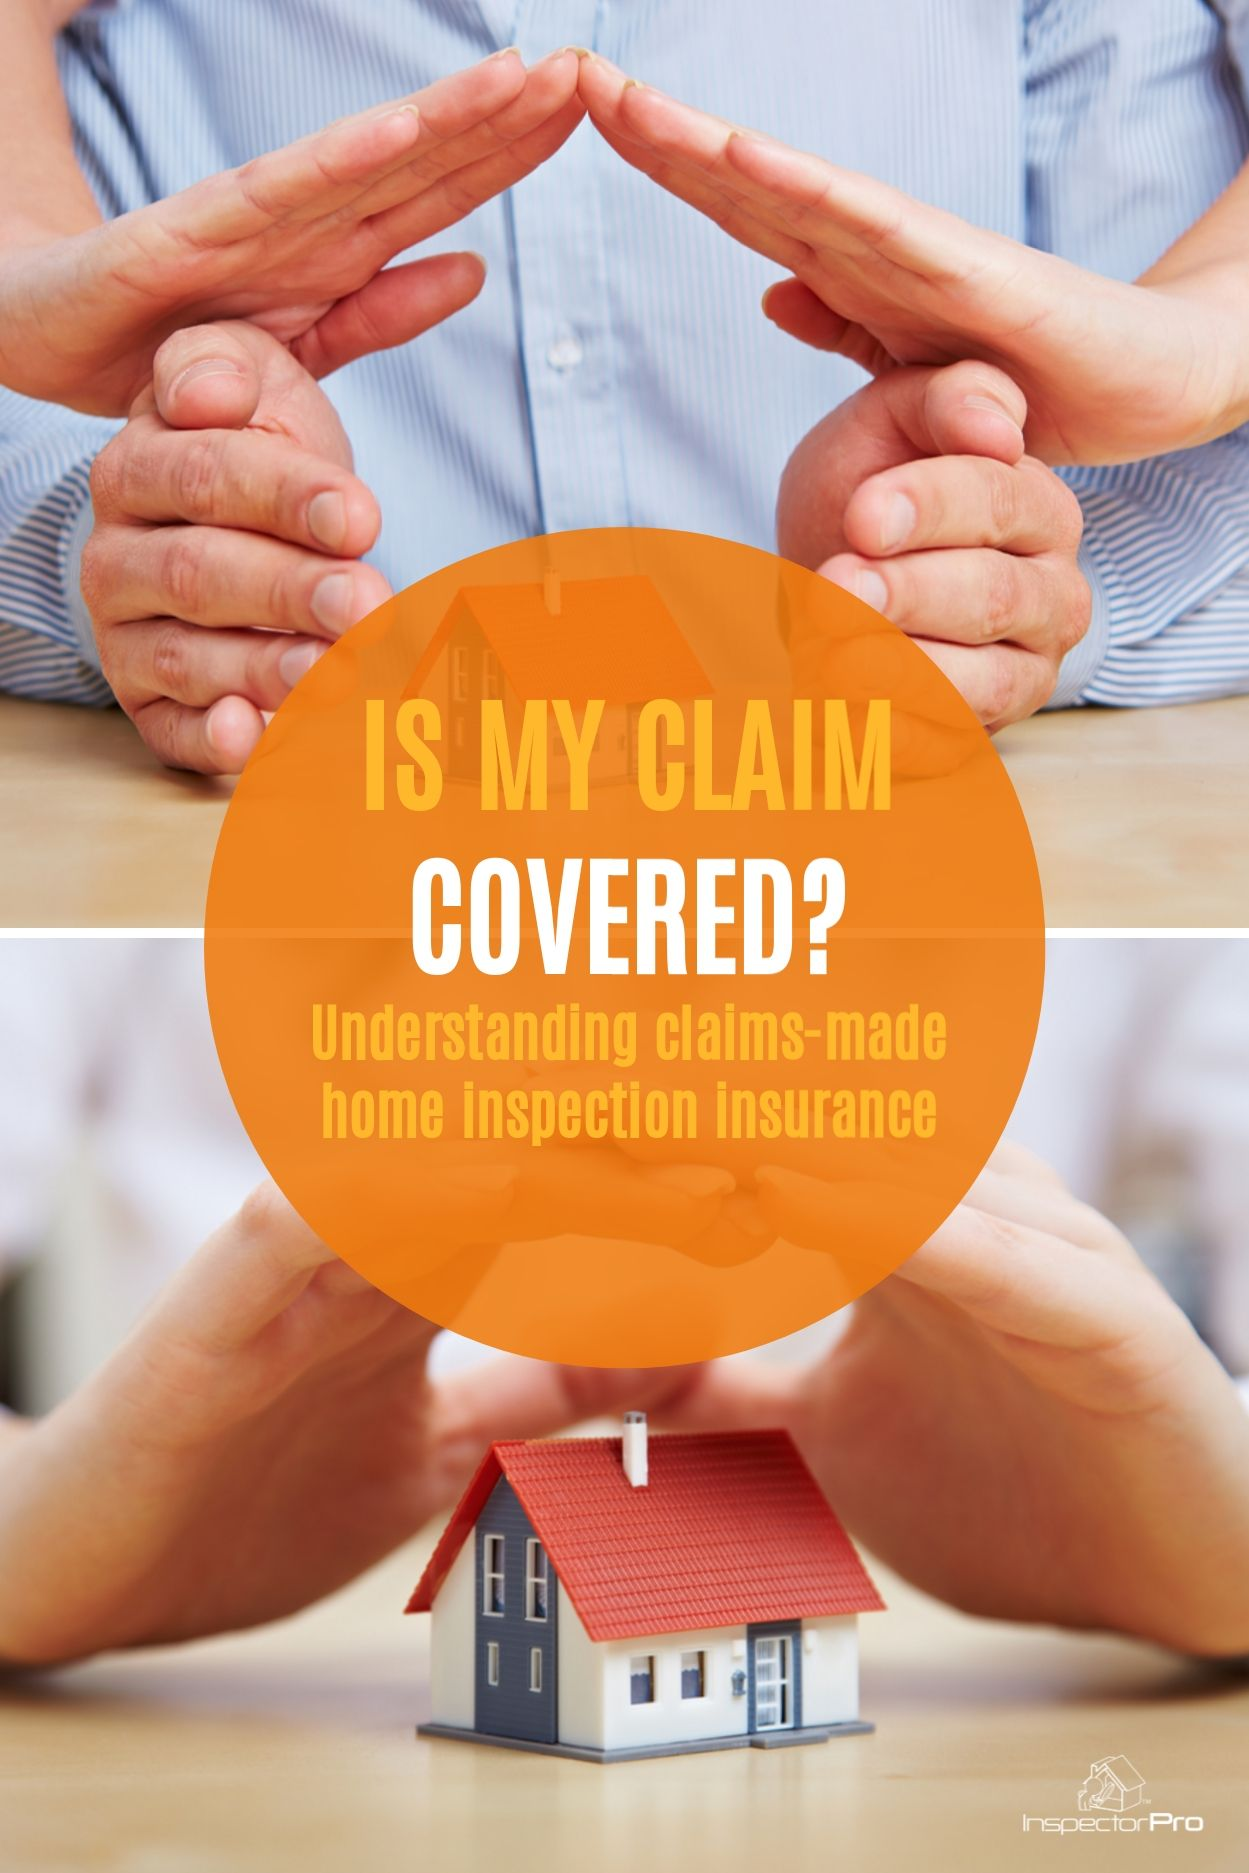 Claims Made Home Inspection Insurance Does It Cover Your Claim